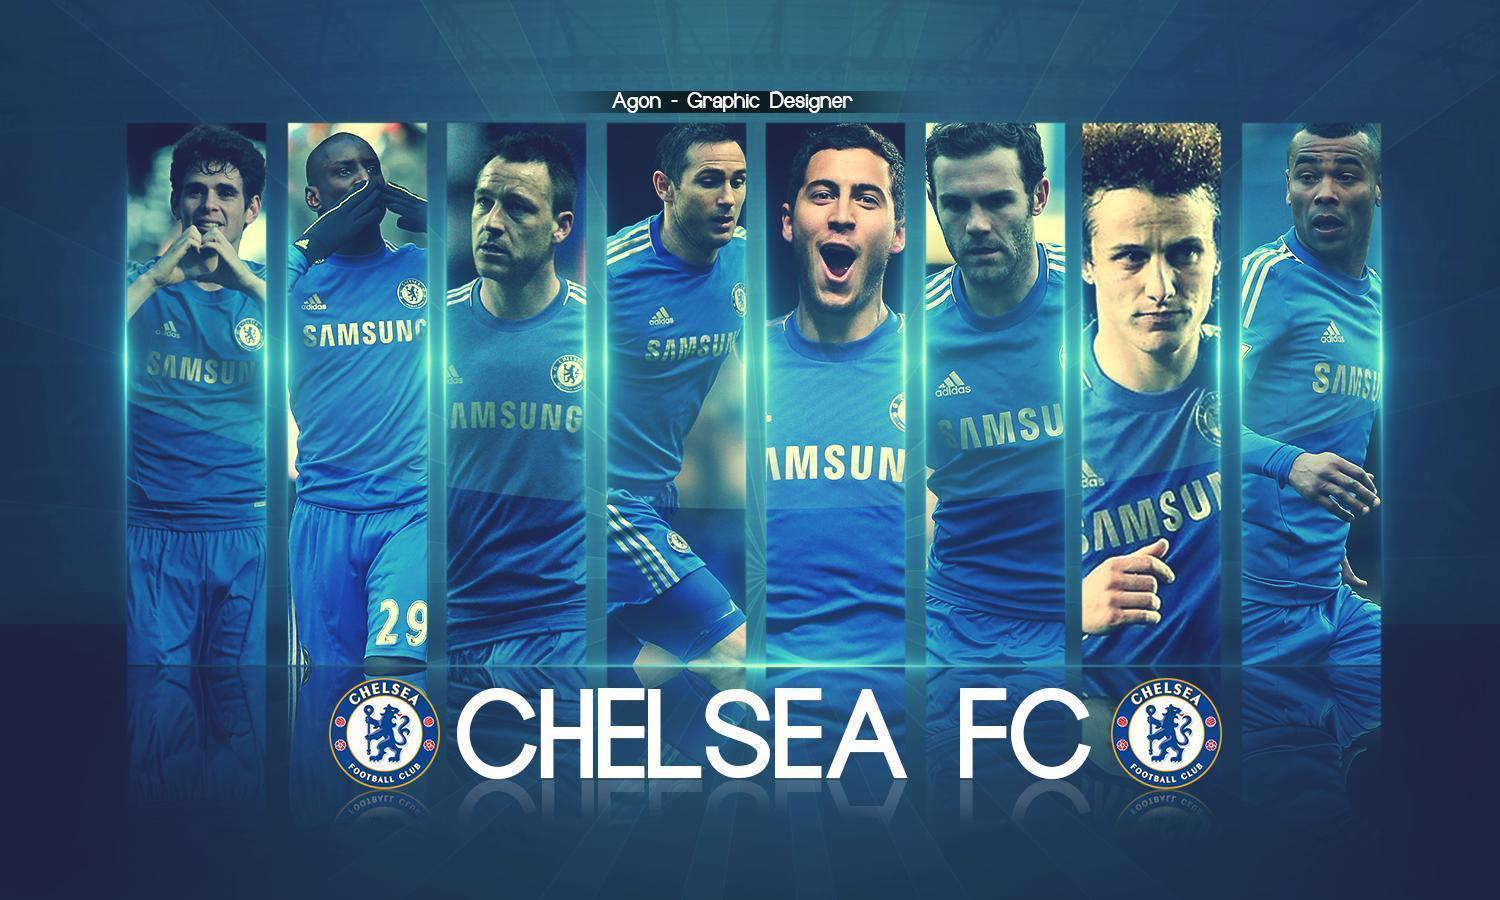 2016 Chelsea Squad Wallpaper Image Wallpaper Collections